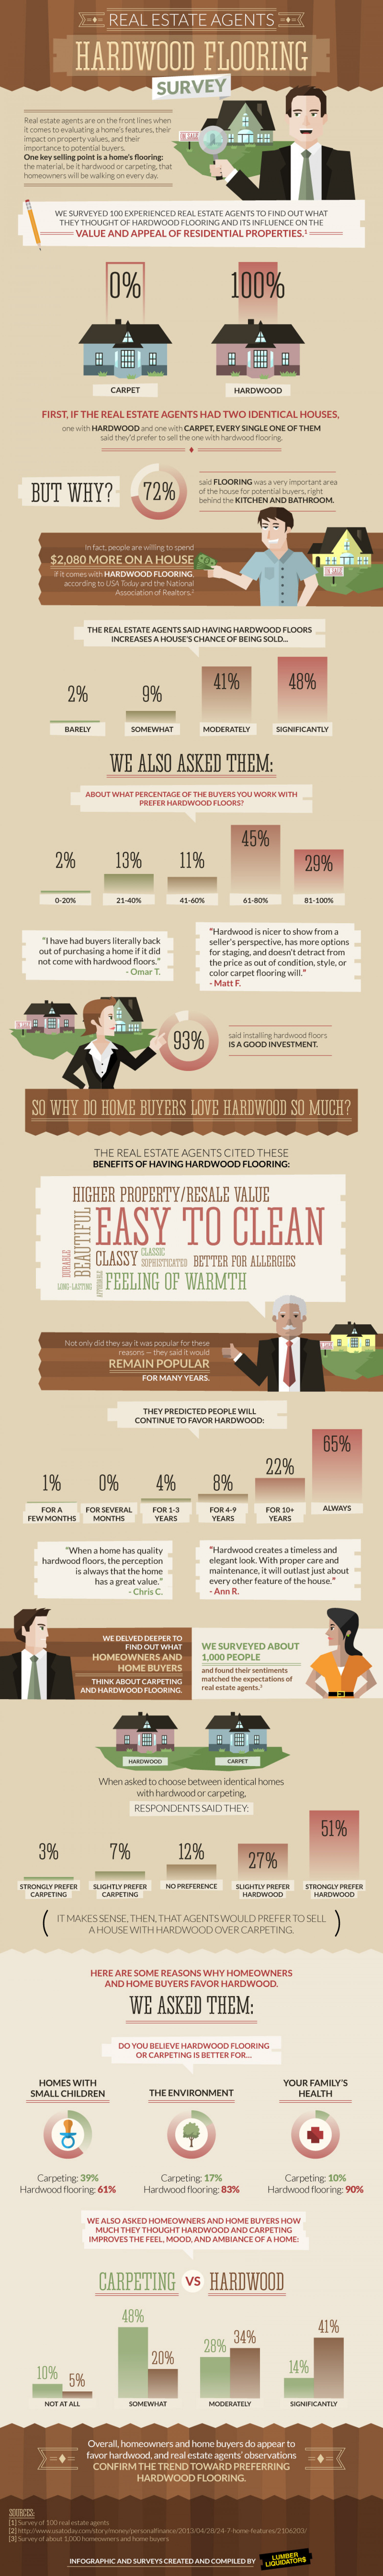 Real Estate Agents - Hardwood Flooring Survey Infographic